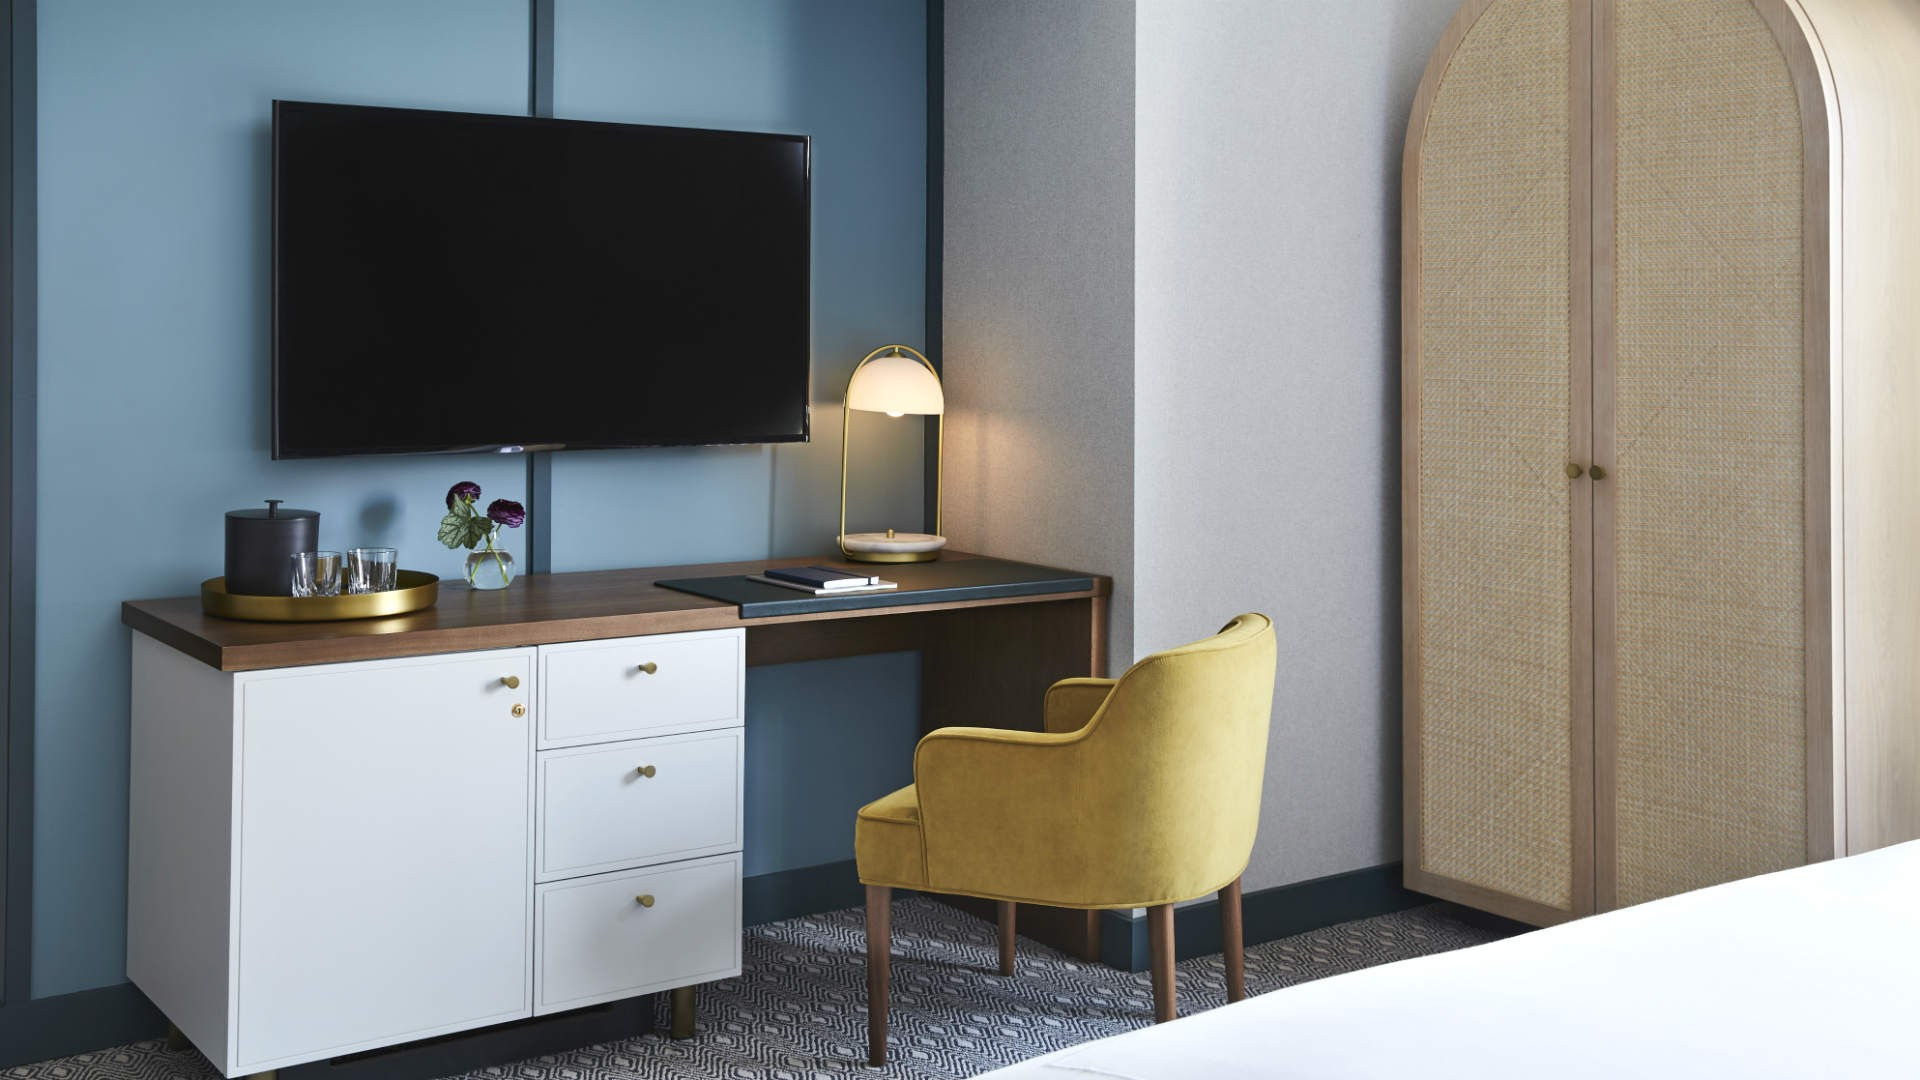 Best hotels Toronto staycation | working space in the Kimpton Saint George suite